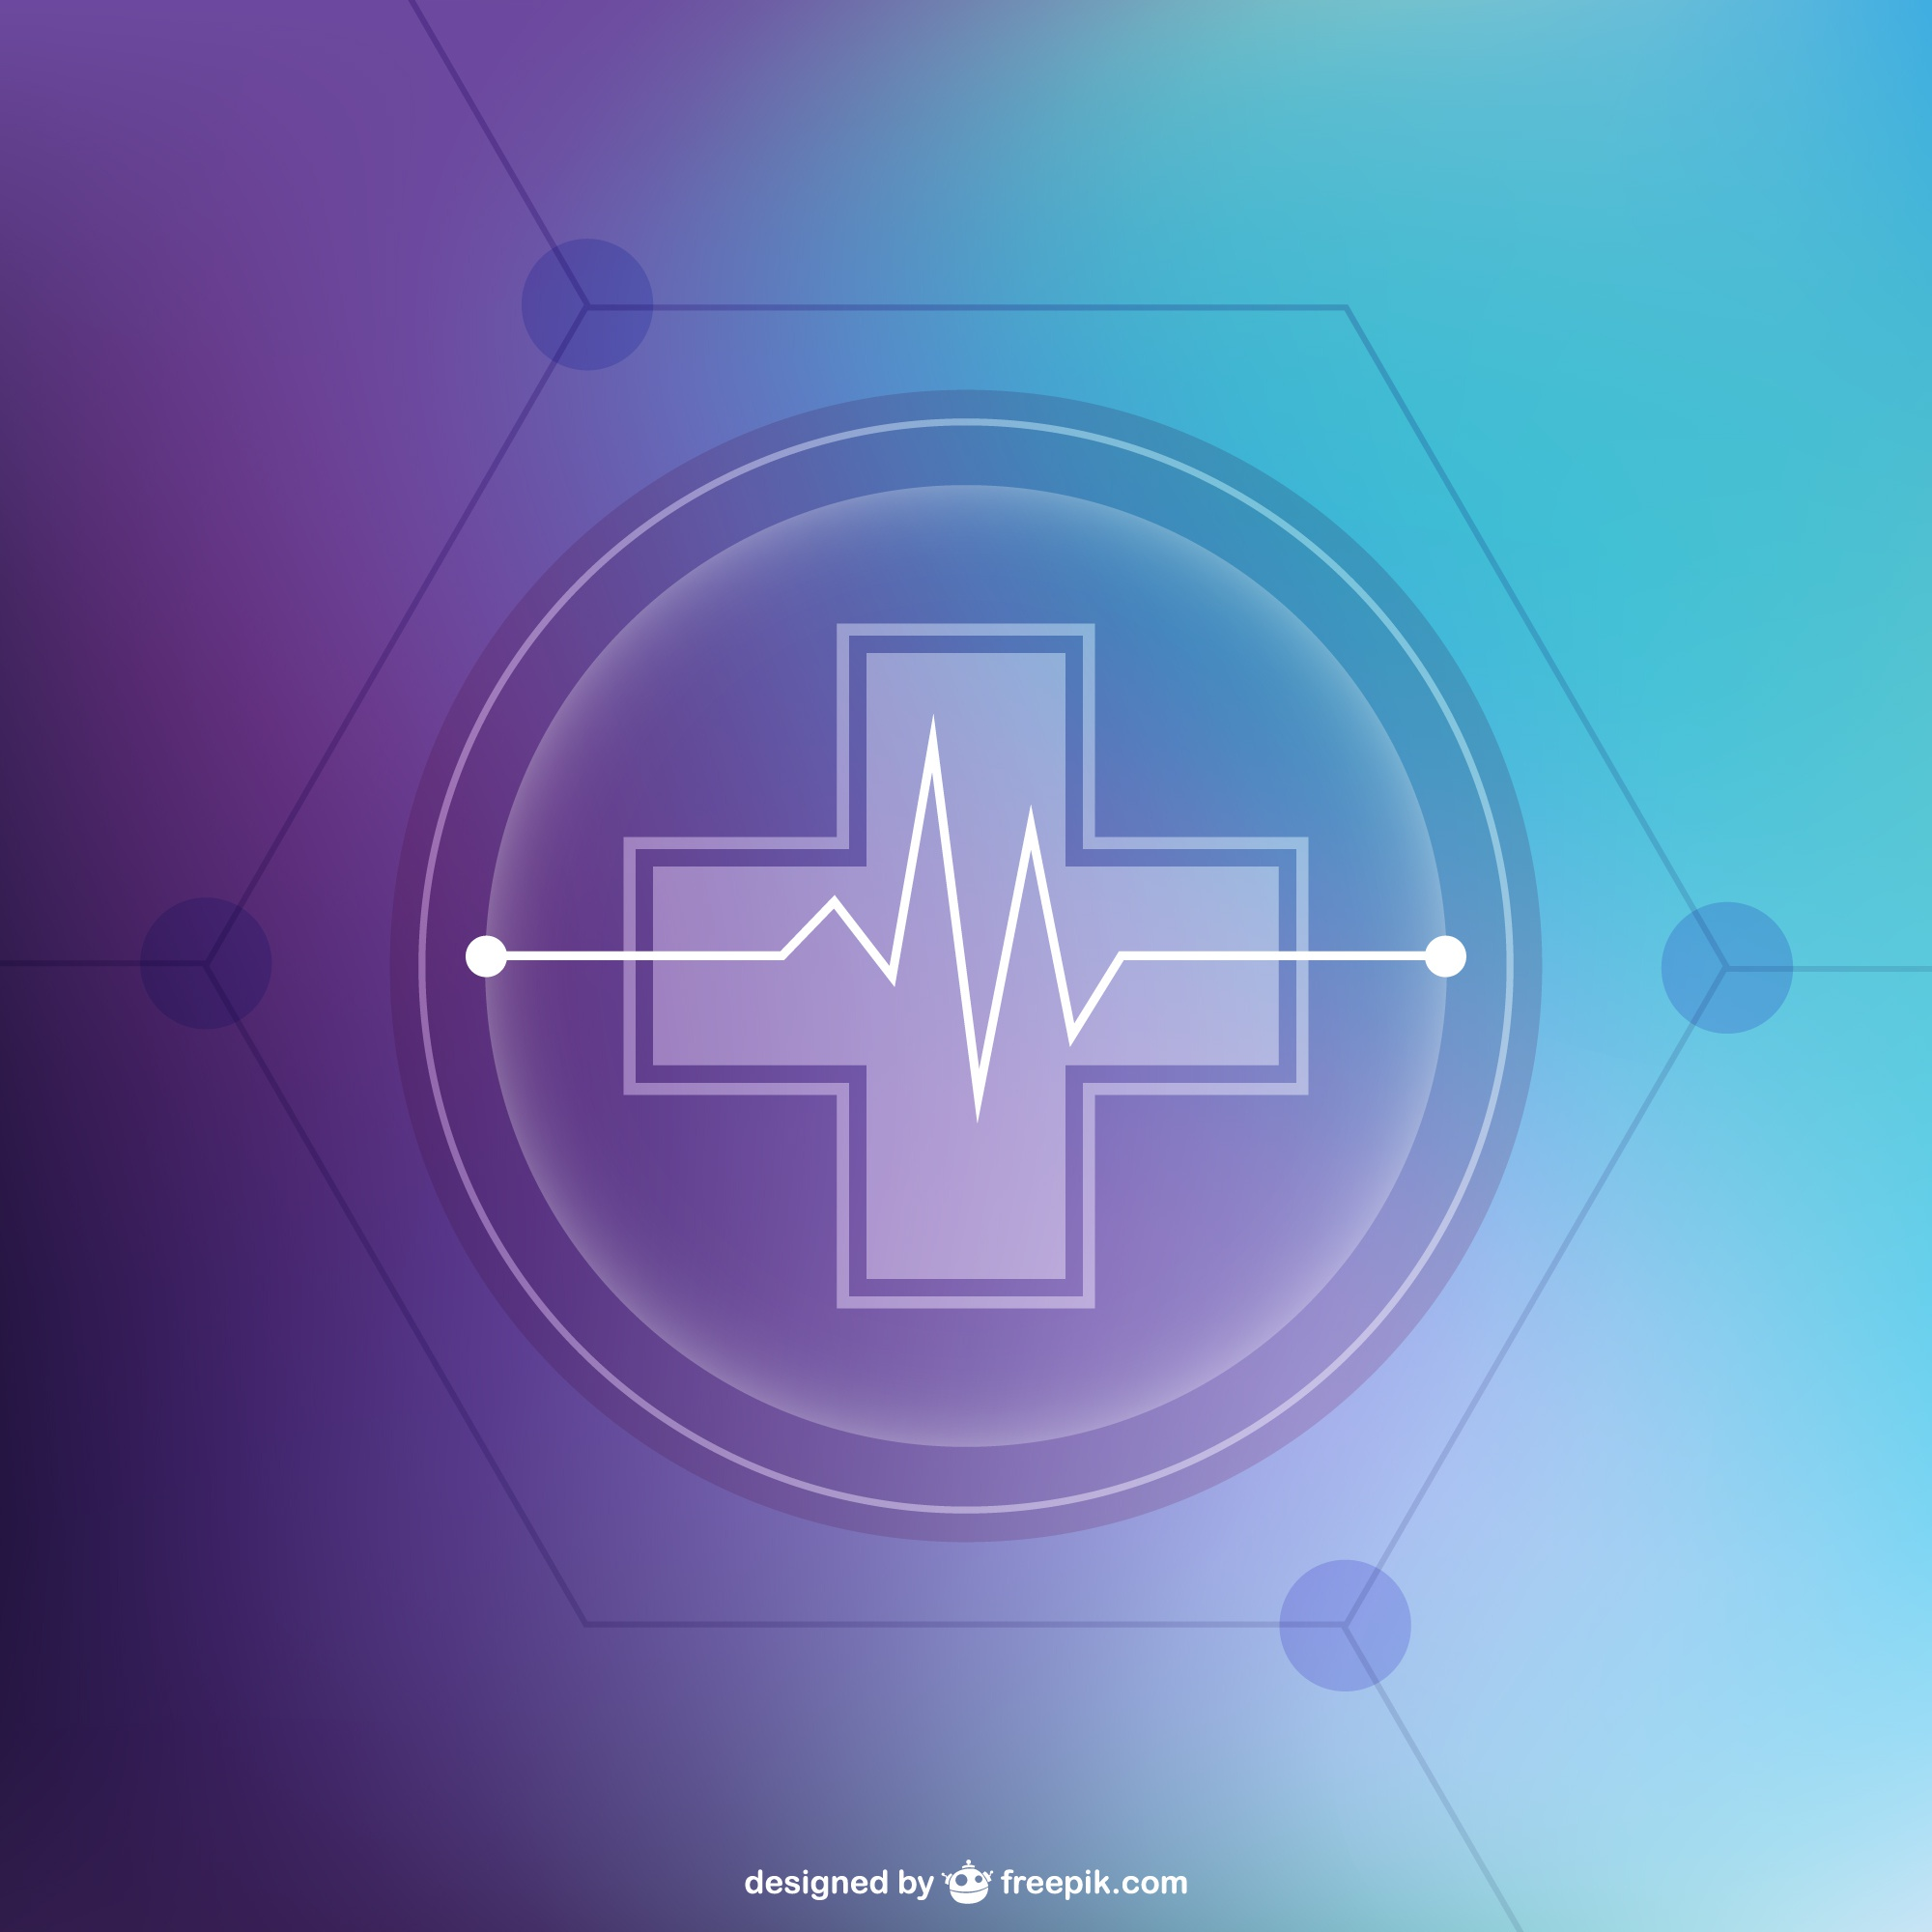 Abstract free medical background